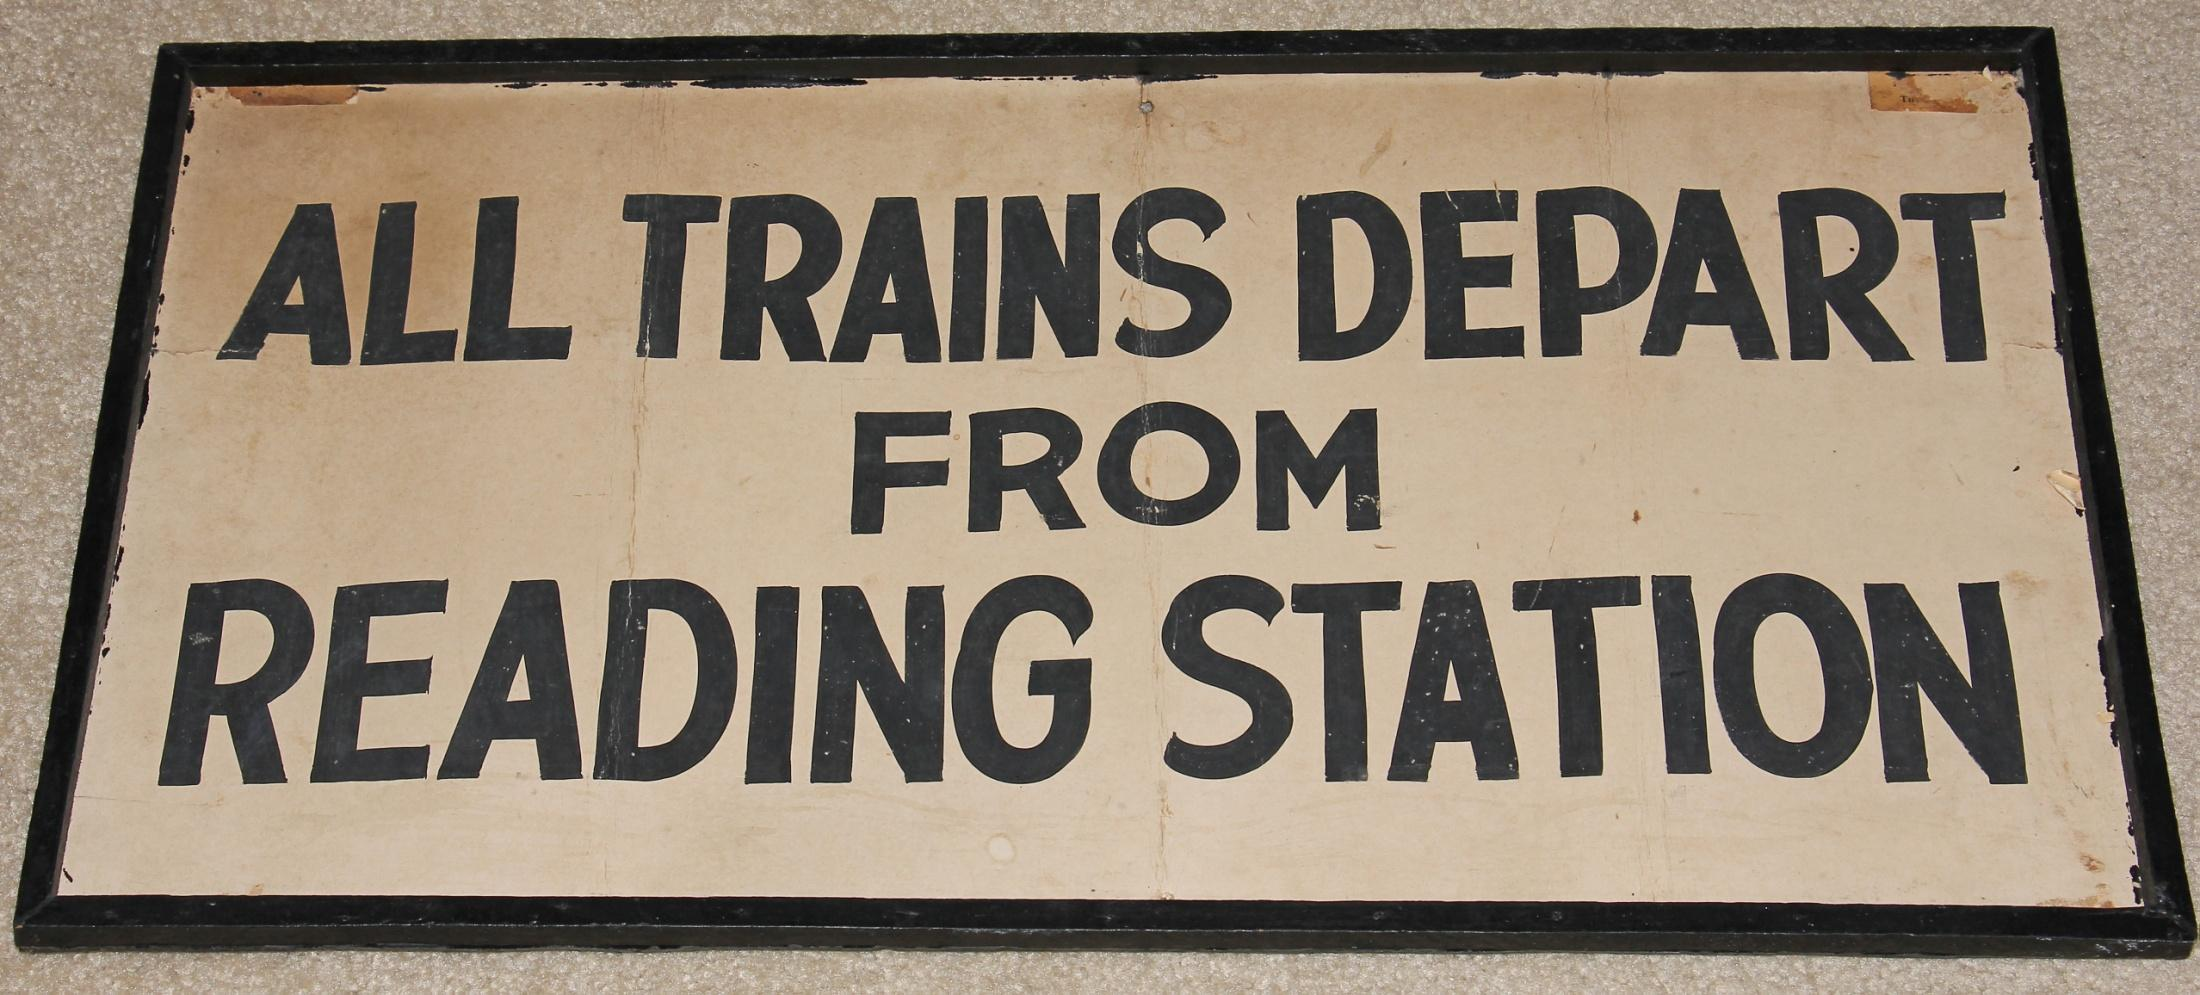 This sign was used, at Cape May, to direct passengers from the closed Pennsylvania Railroad Station to the Reading Station.